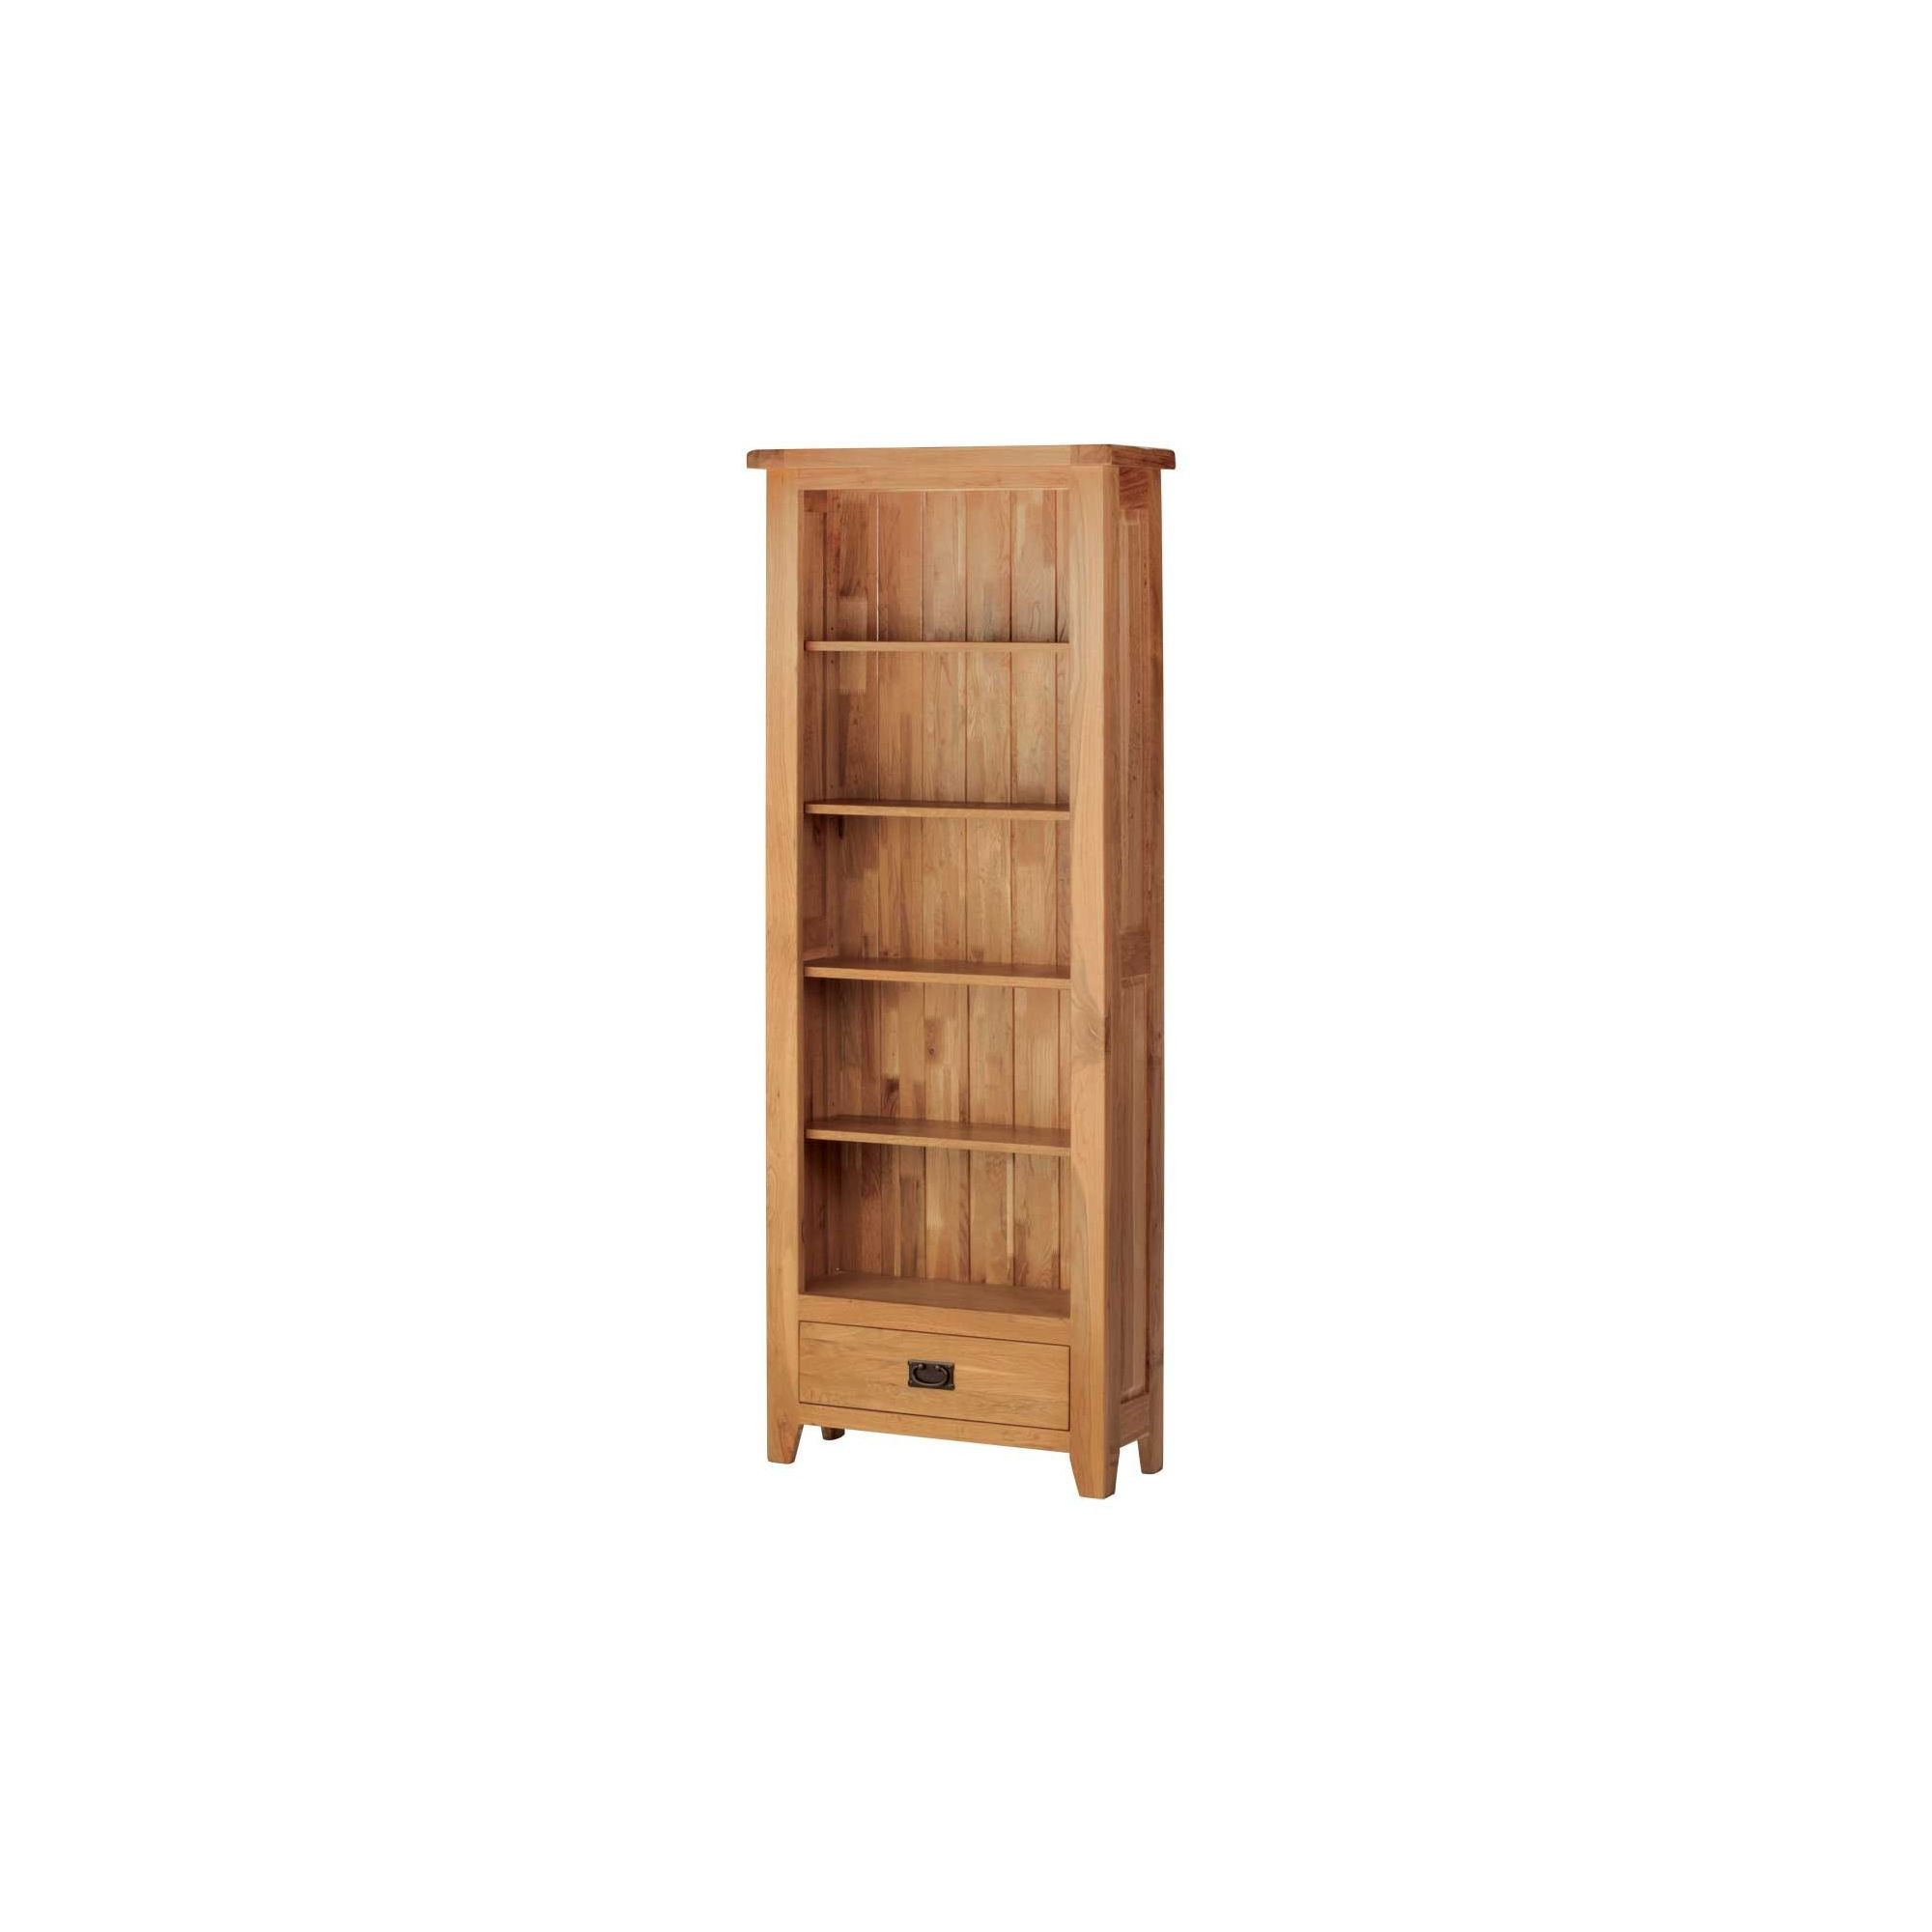 Thorndon Sandown Large Bookcase in Rustic Oak at Tescos Direct